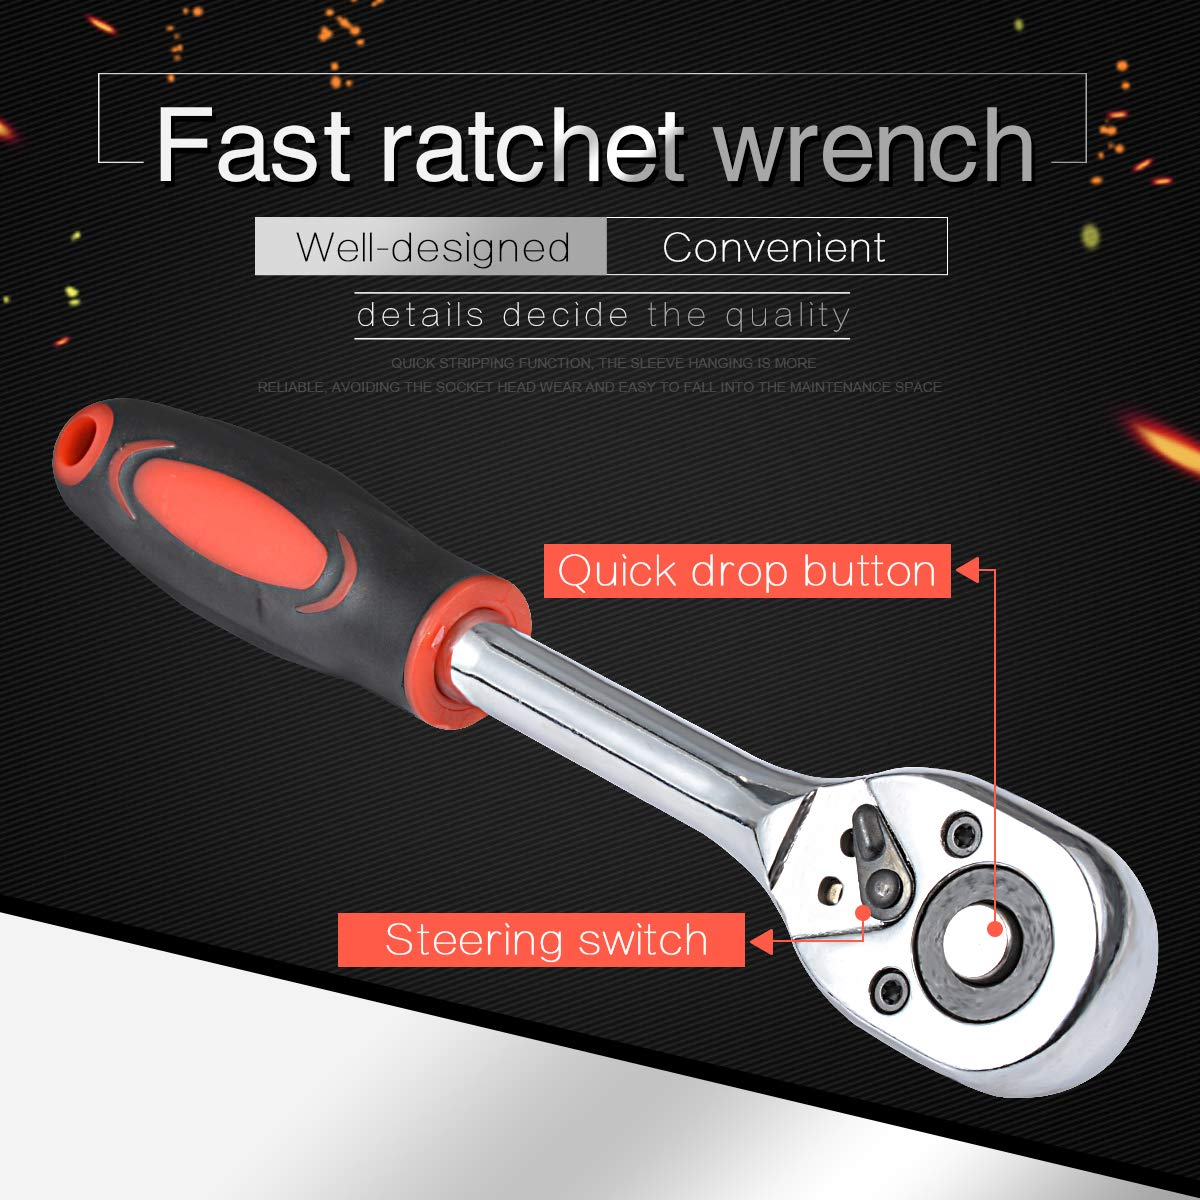 24 Teeth Chrome Vanadium Steel Drive Pear Head Quick Released Ratchet Handle and Extension Bar KATUR Ratchet Wrench for Socket 1//4 Inch Wrench 155mm Length